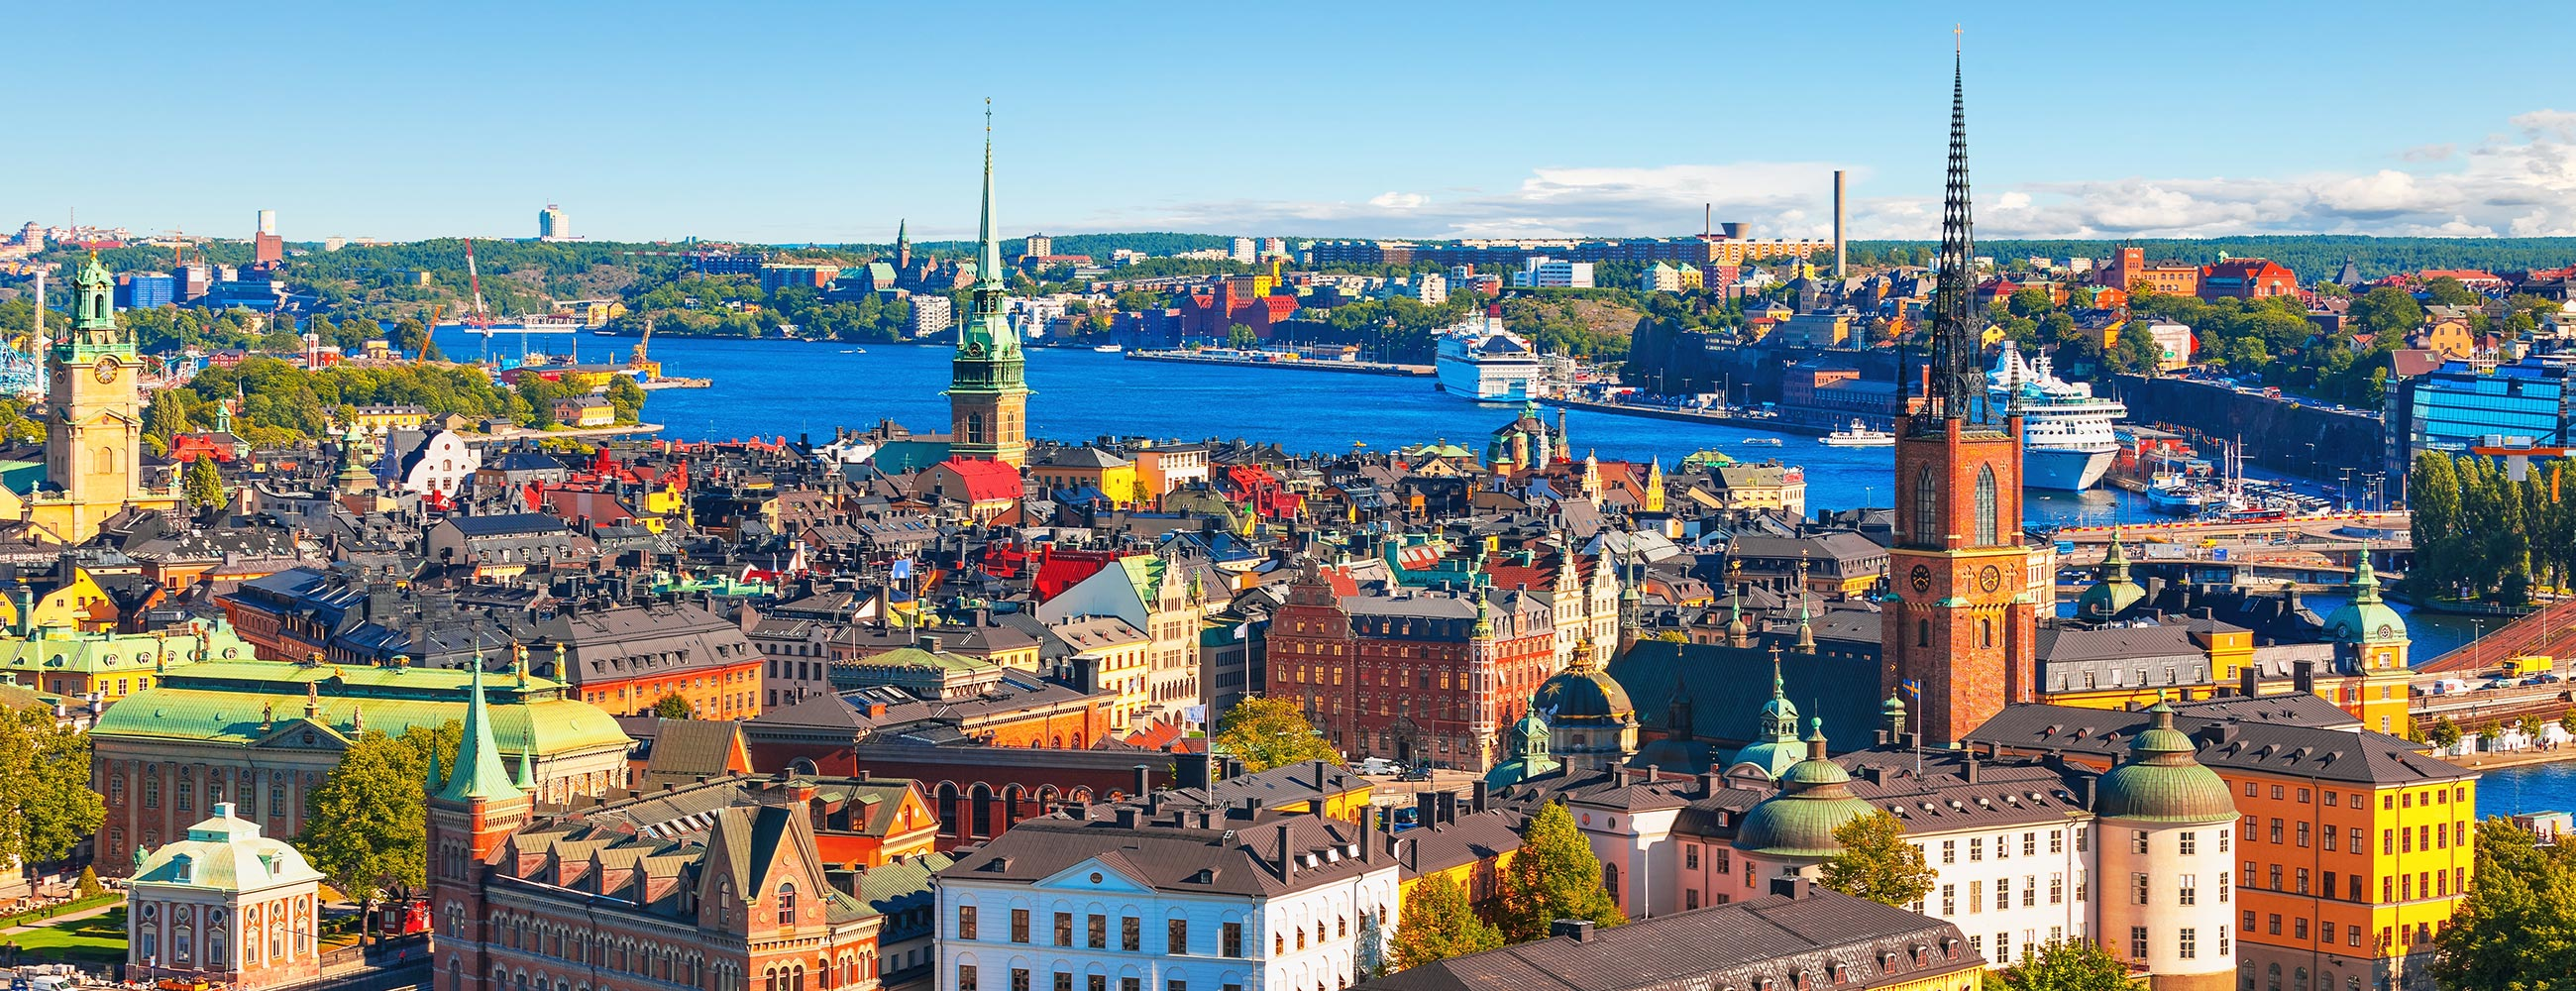 3-day-tour-to-stockholm-hero